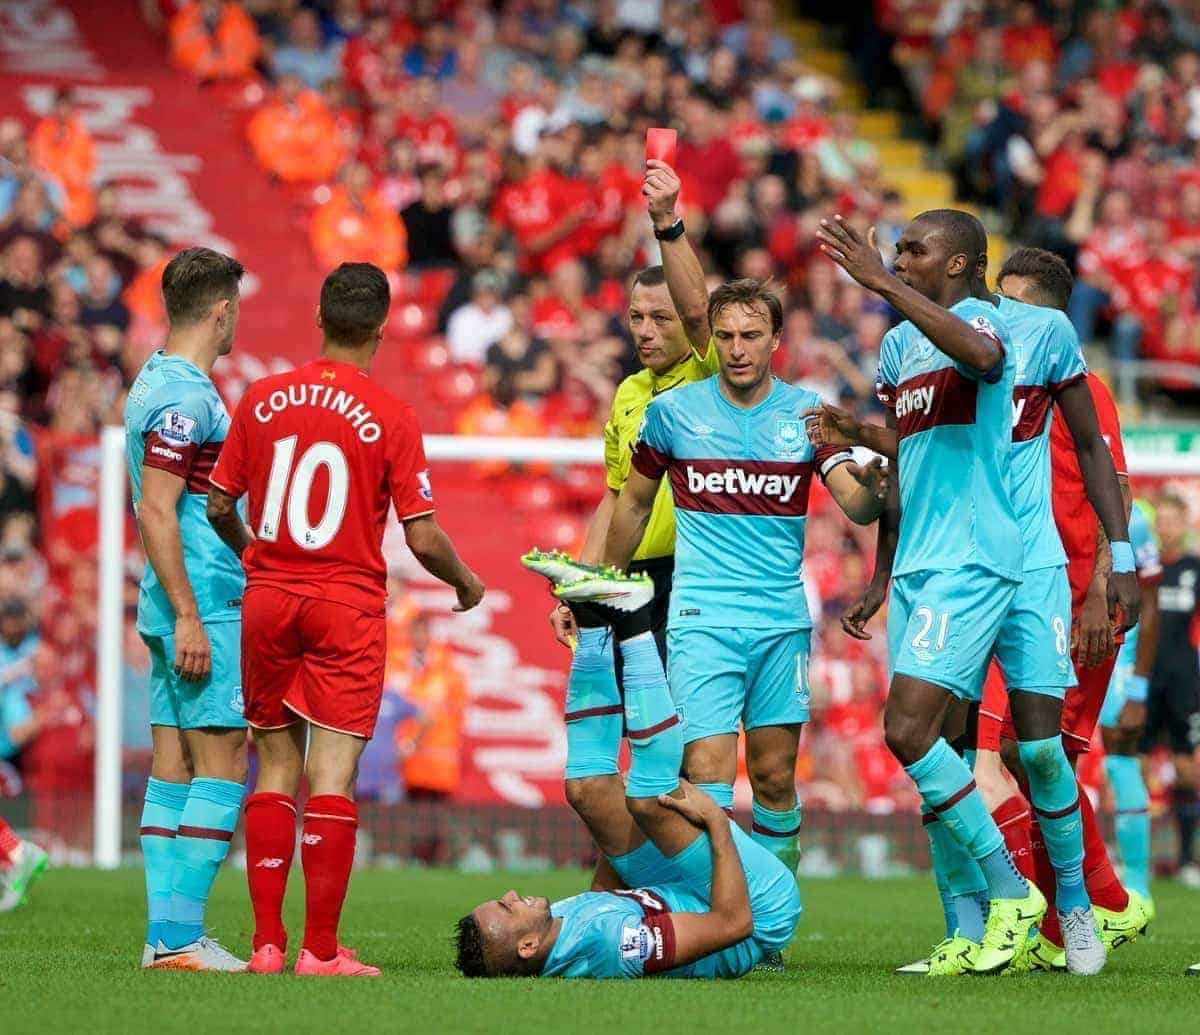 LIVERPOOL, ENGLAND - Saturday, August 29, 2015: Liverpool's Philippe Coutinho Correia is shown a red card for a second yellow by referee Kevin Friend and is sent off against West Ham United during the Premier League match at Anfield. (Pic by David Rawcliffe/Propaganda)